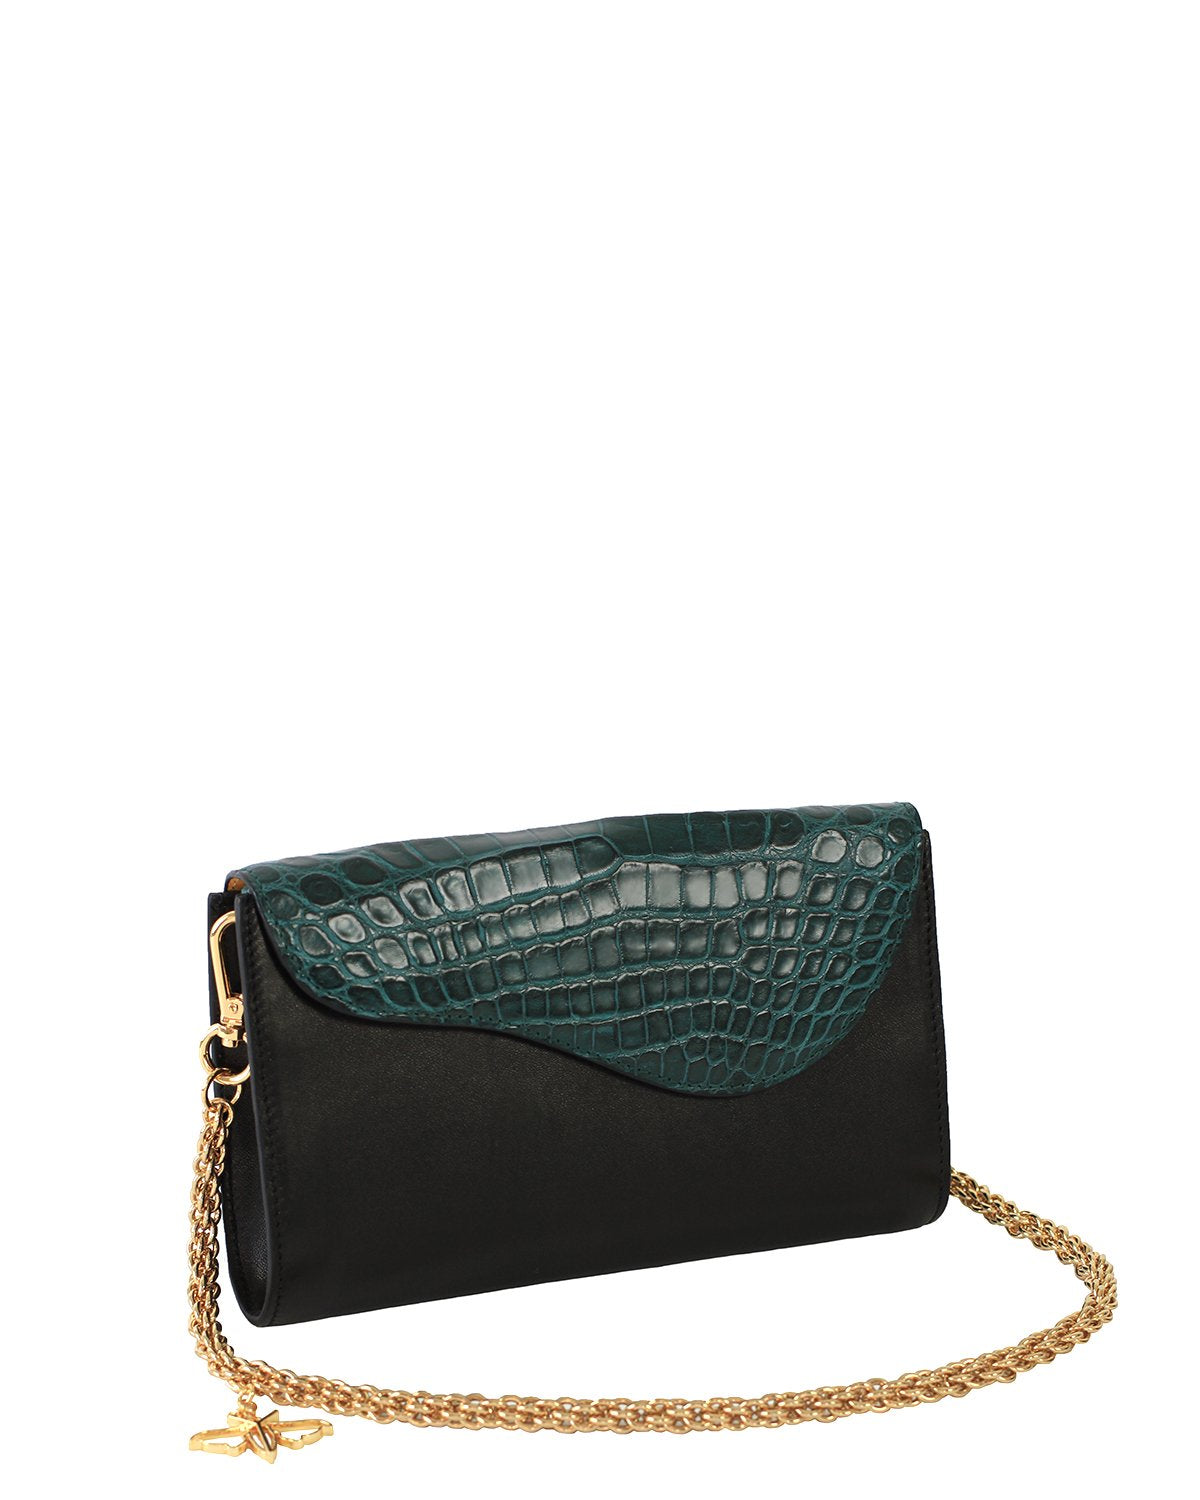 GREEN BLACK GRAY ALLIGATOR OSTRICH OSCAR CLUTCH YELLOW GOLD YARA BASHOOR ANGLE VIEW